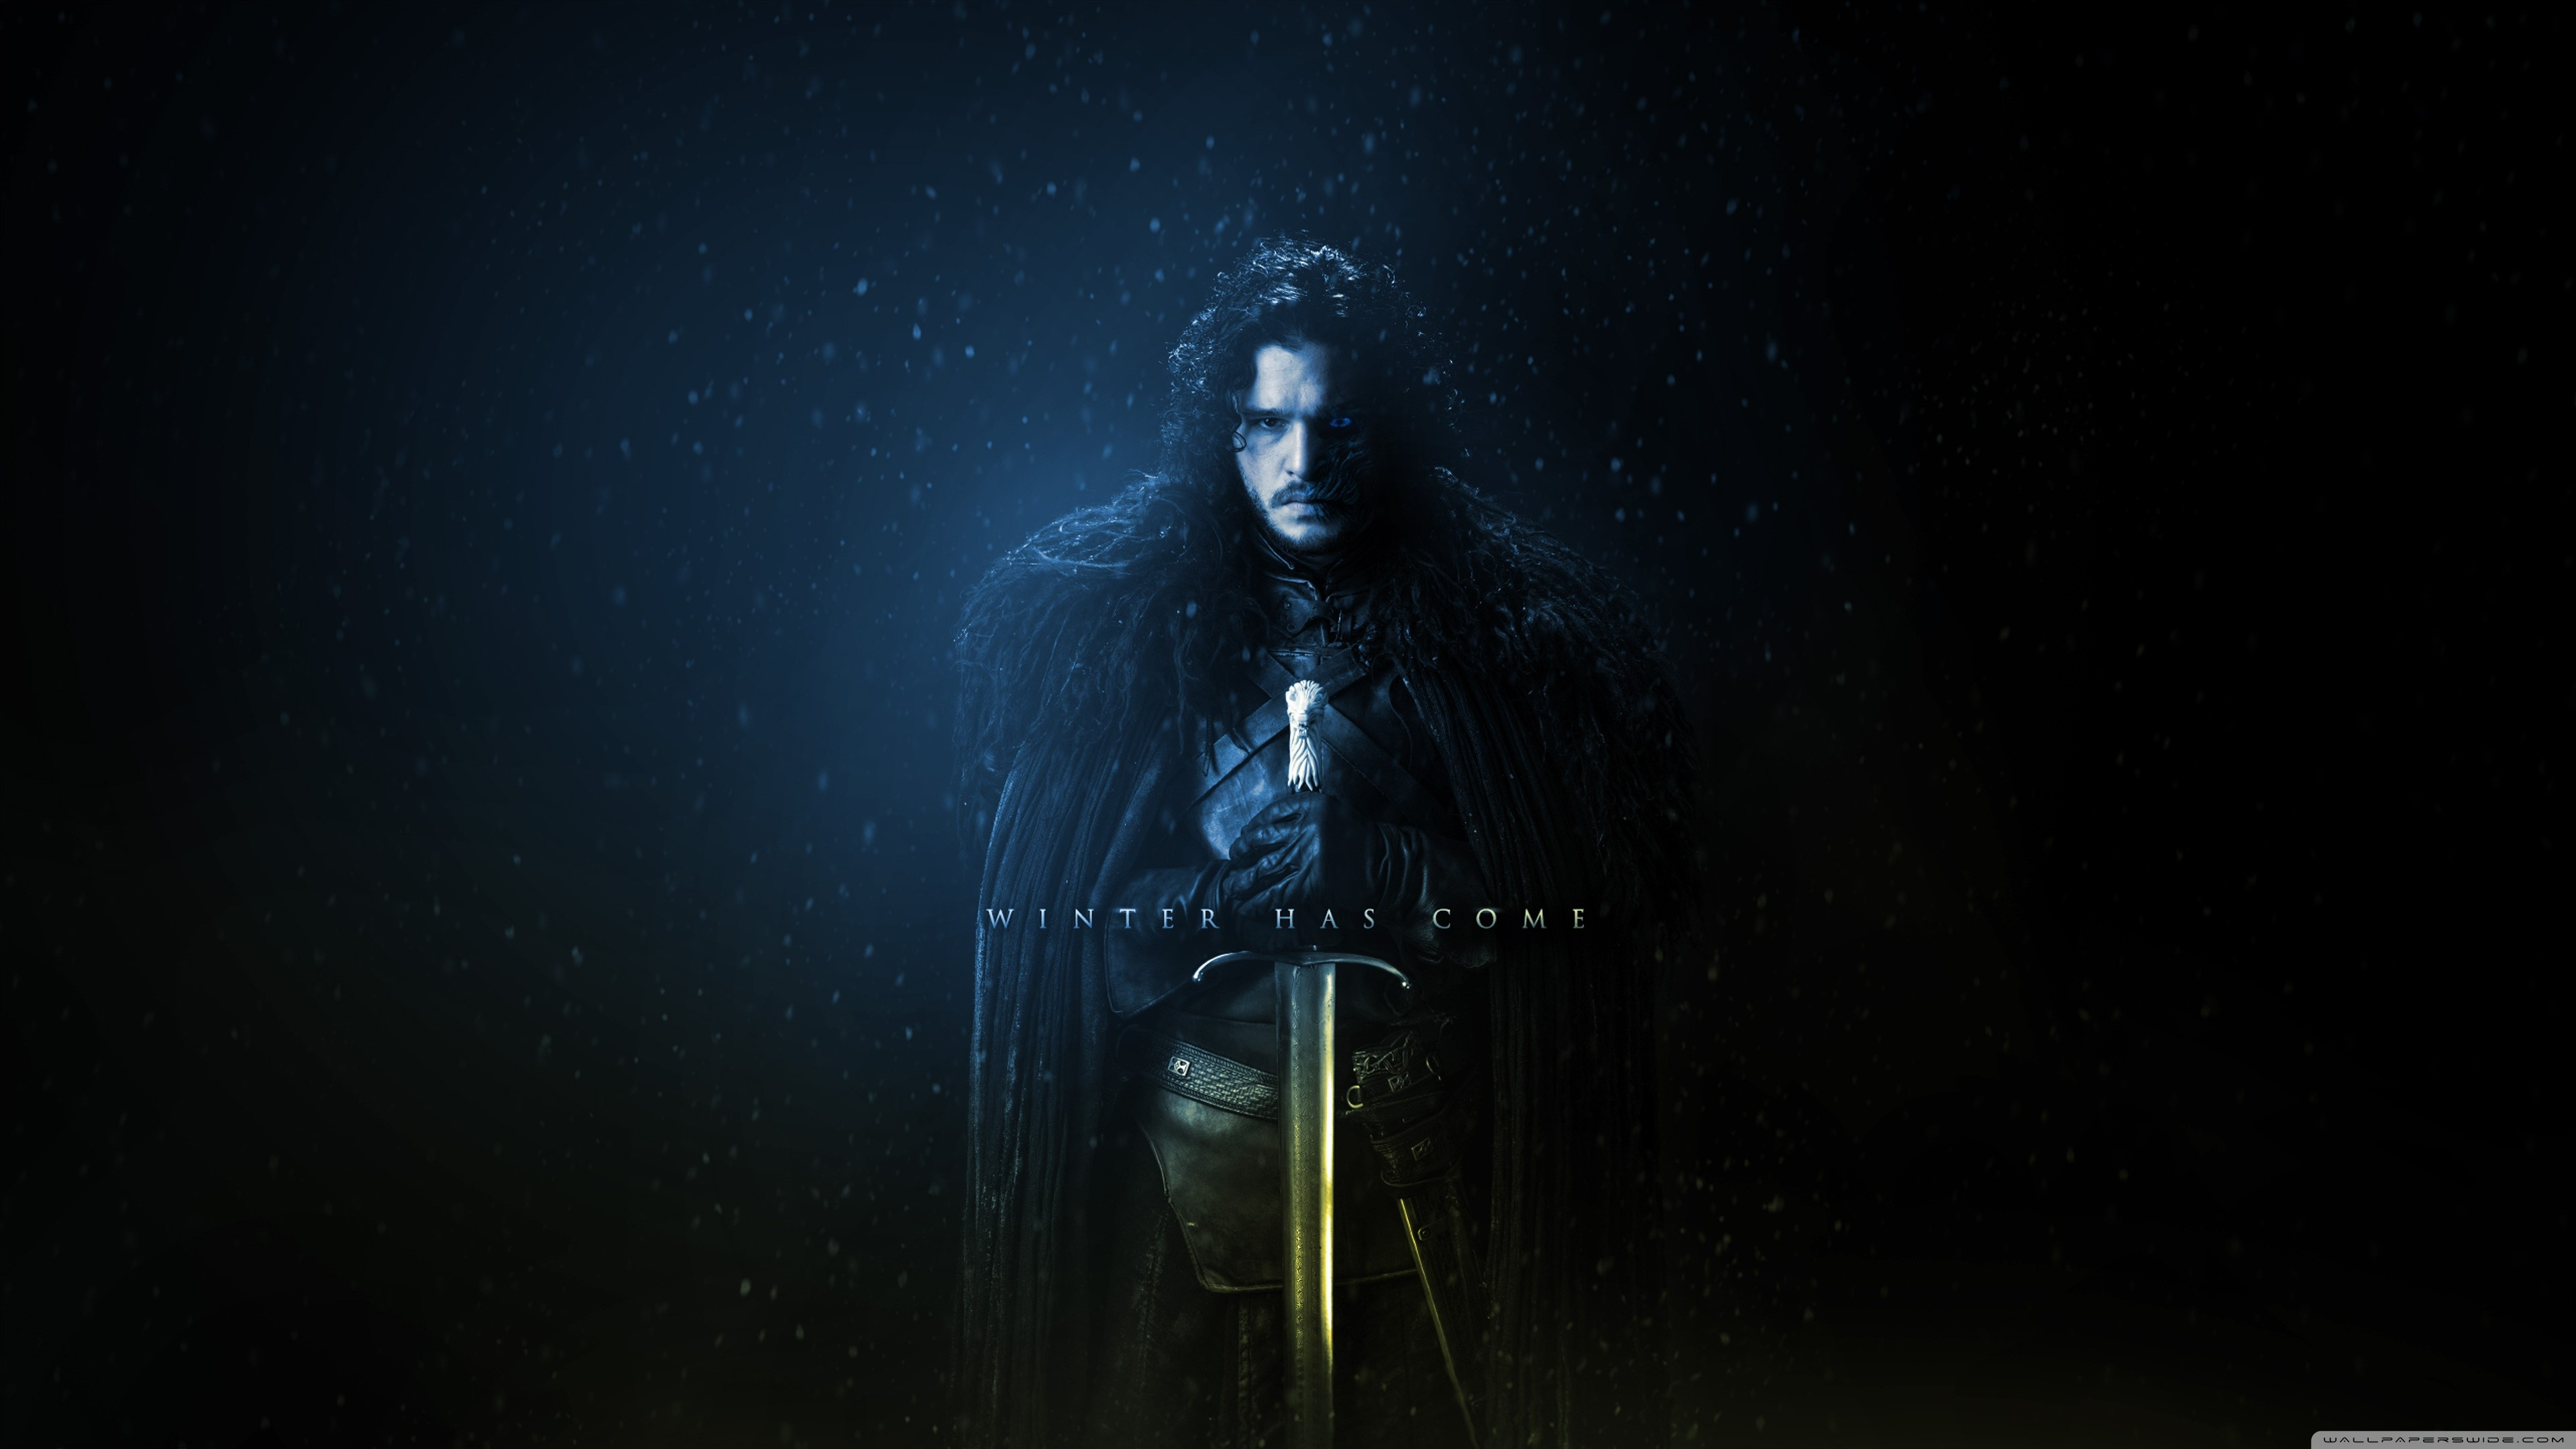 WallpapersWidecom Game of Thrones HD Desktop Wallpapers for 4K 3840x2160